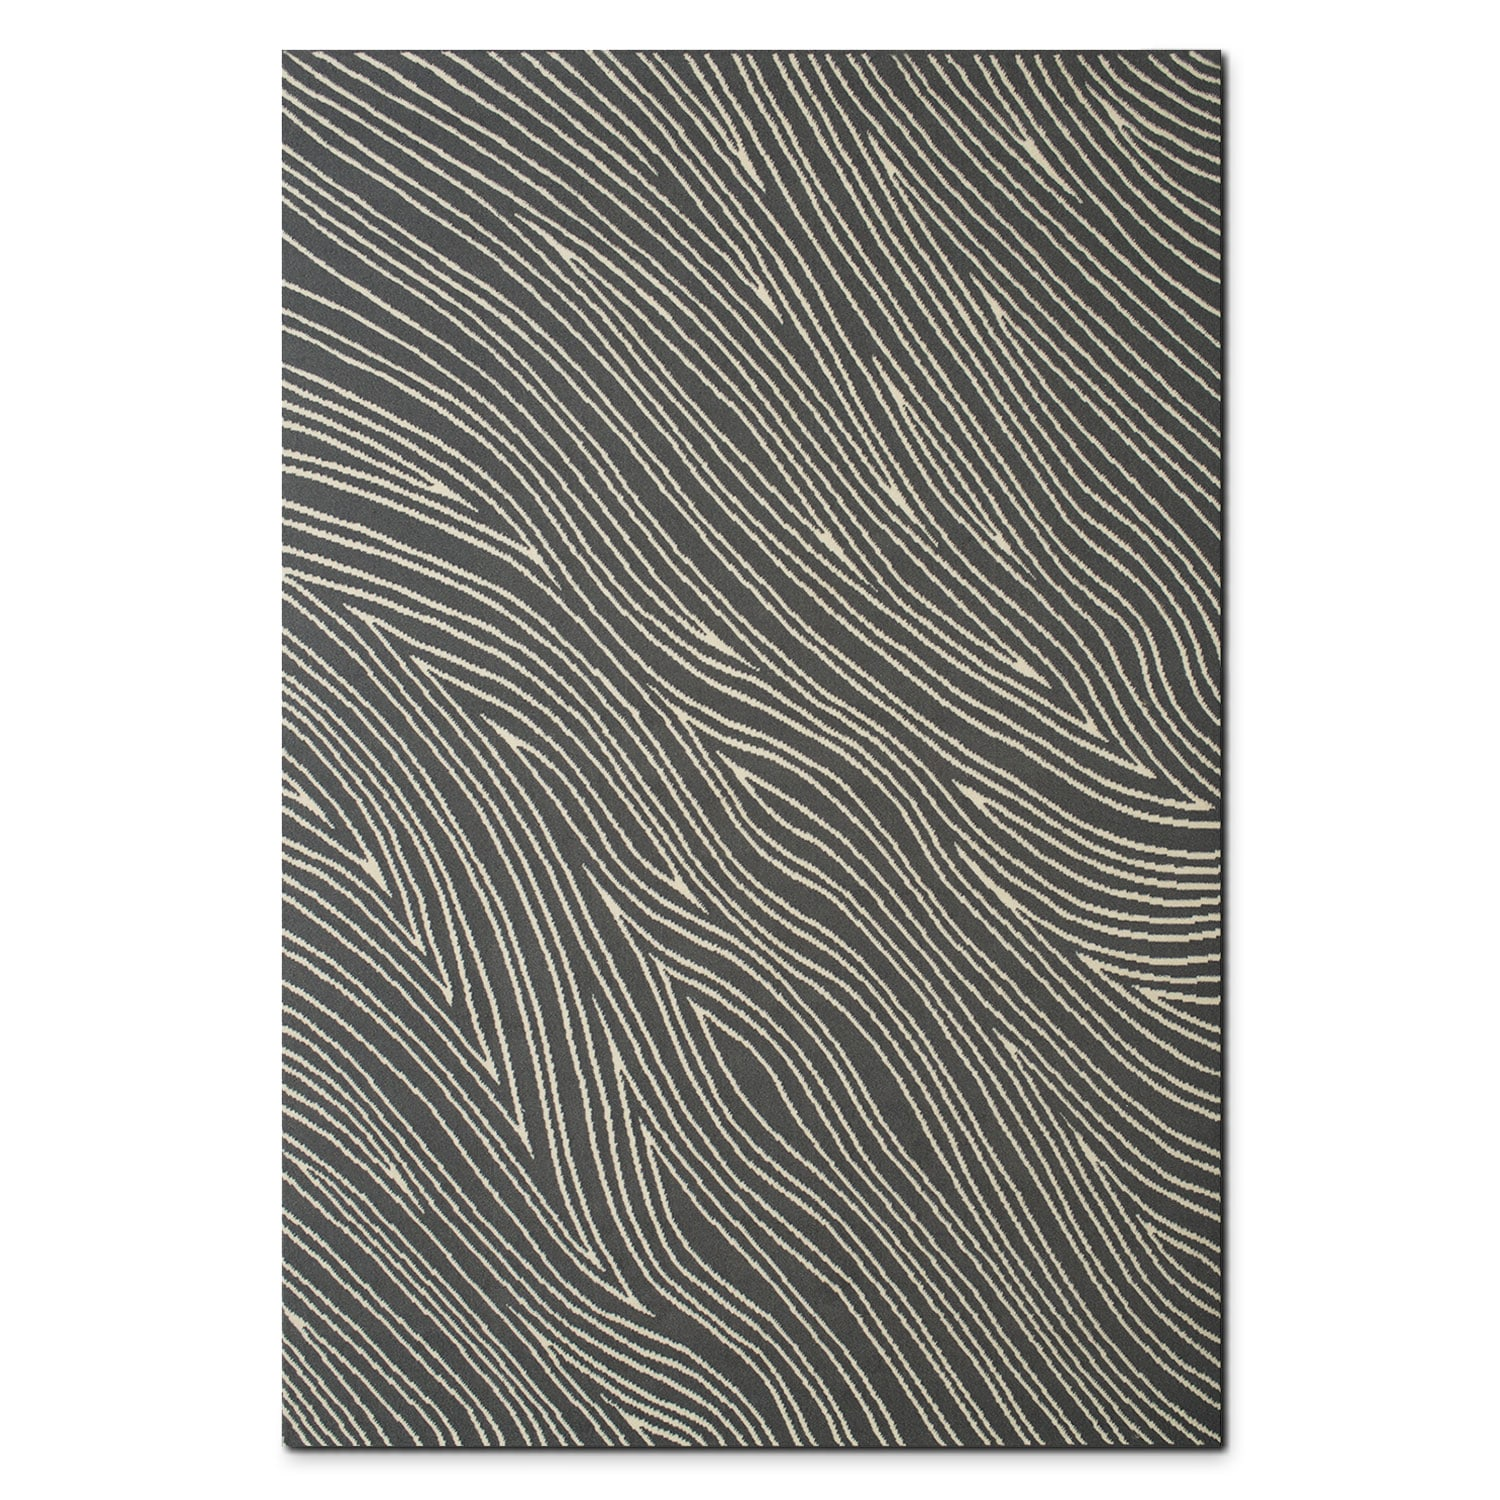 Broadway 5' x 8' Area Rug - Gray and Ivory